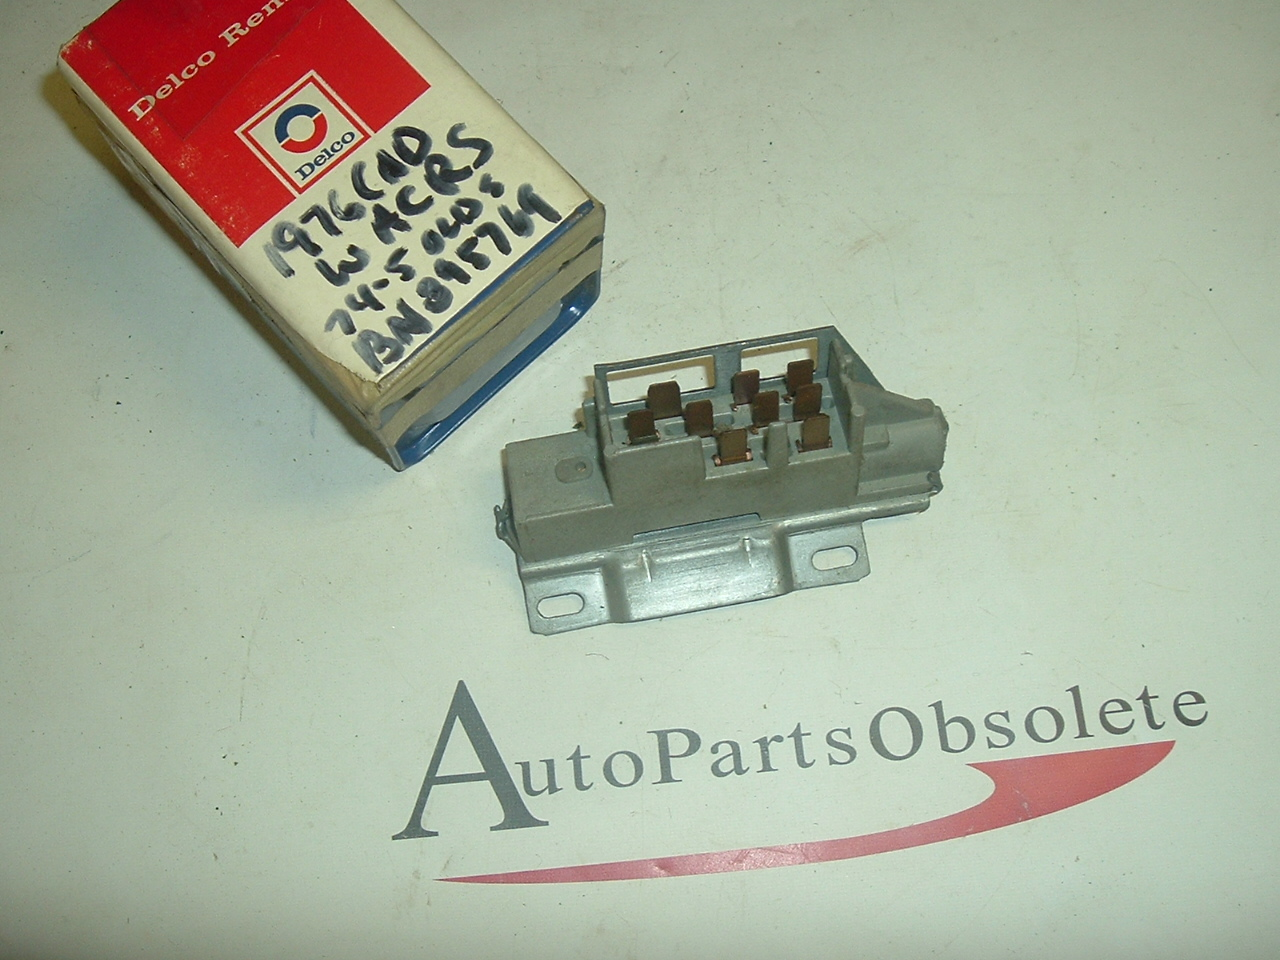 1976 Cadillac ignition switch 1990100 (a 1990100)